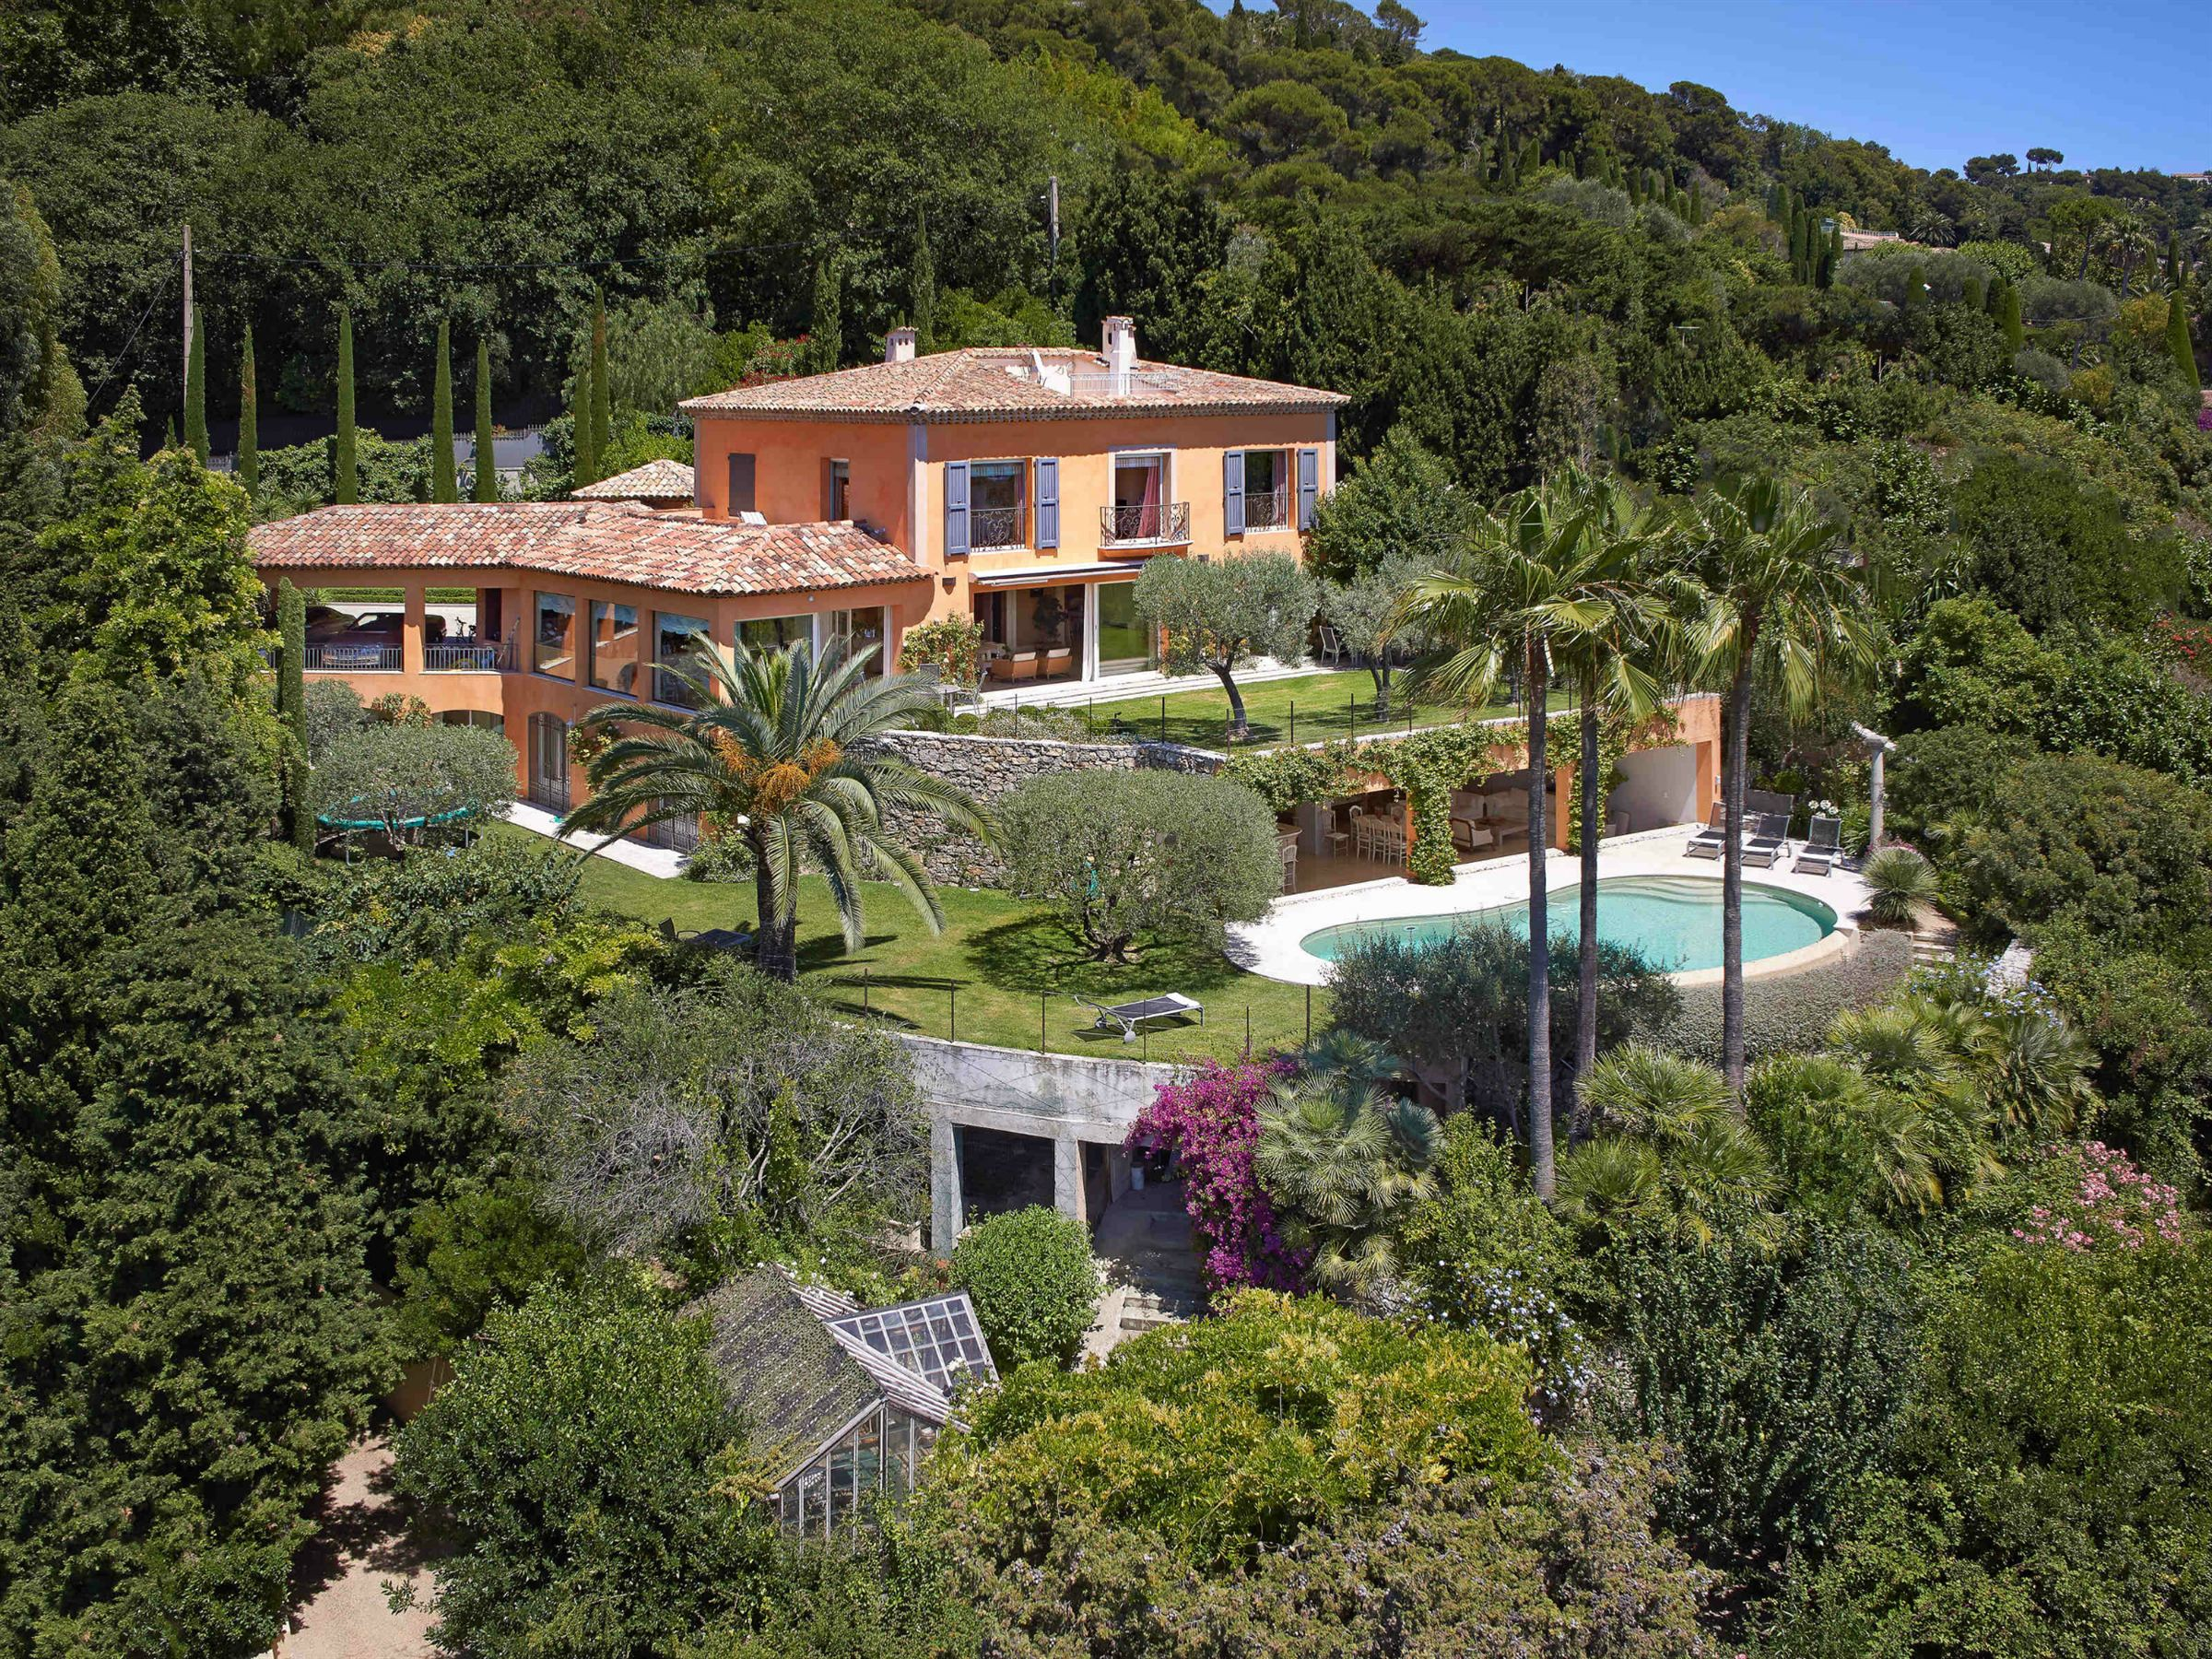 Maison unifamiliale pour l Vente à Neo Classic property with amazing bay views Cannes, Provence-Alpes-Cote D'Azur 06400 France